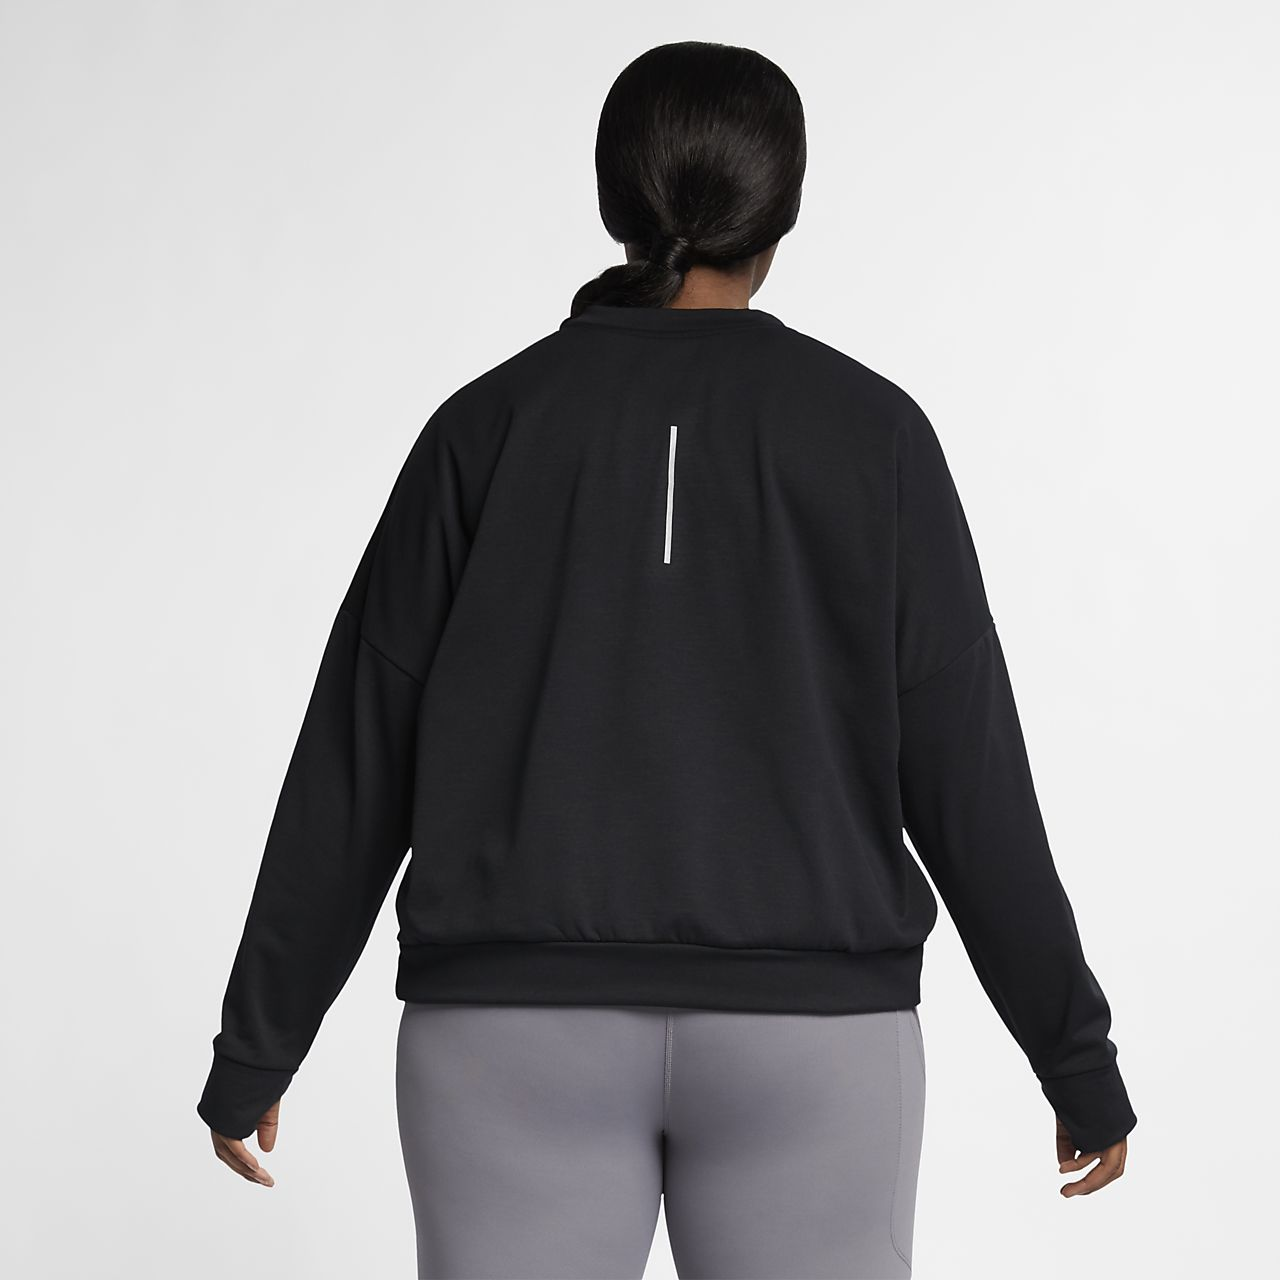 Cheap online clothing stores » Jcpenney nike hoodie